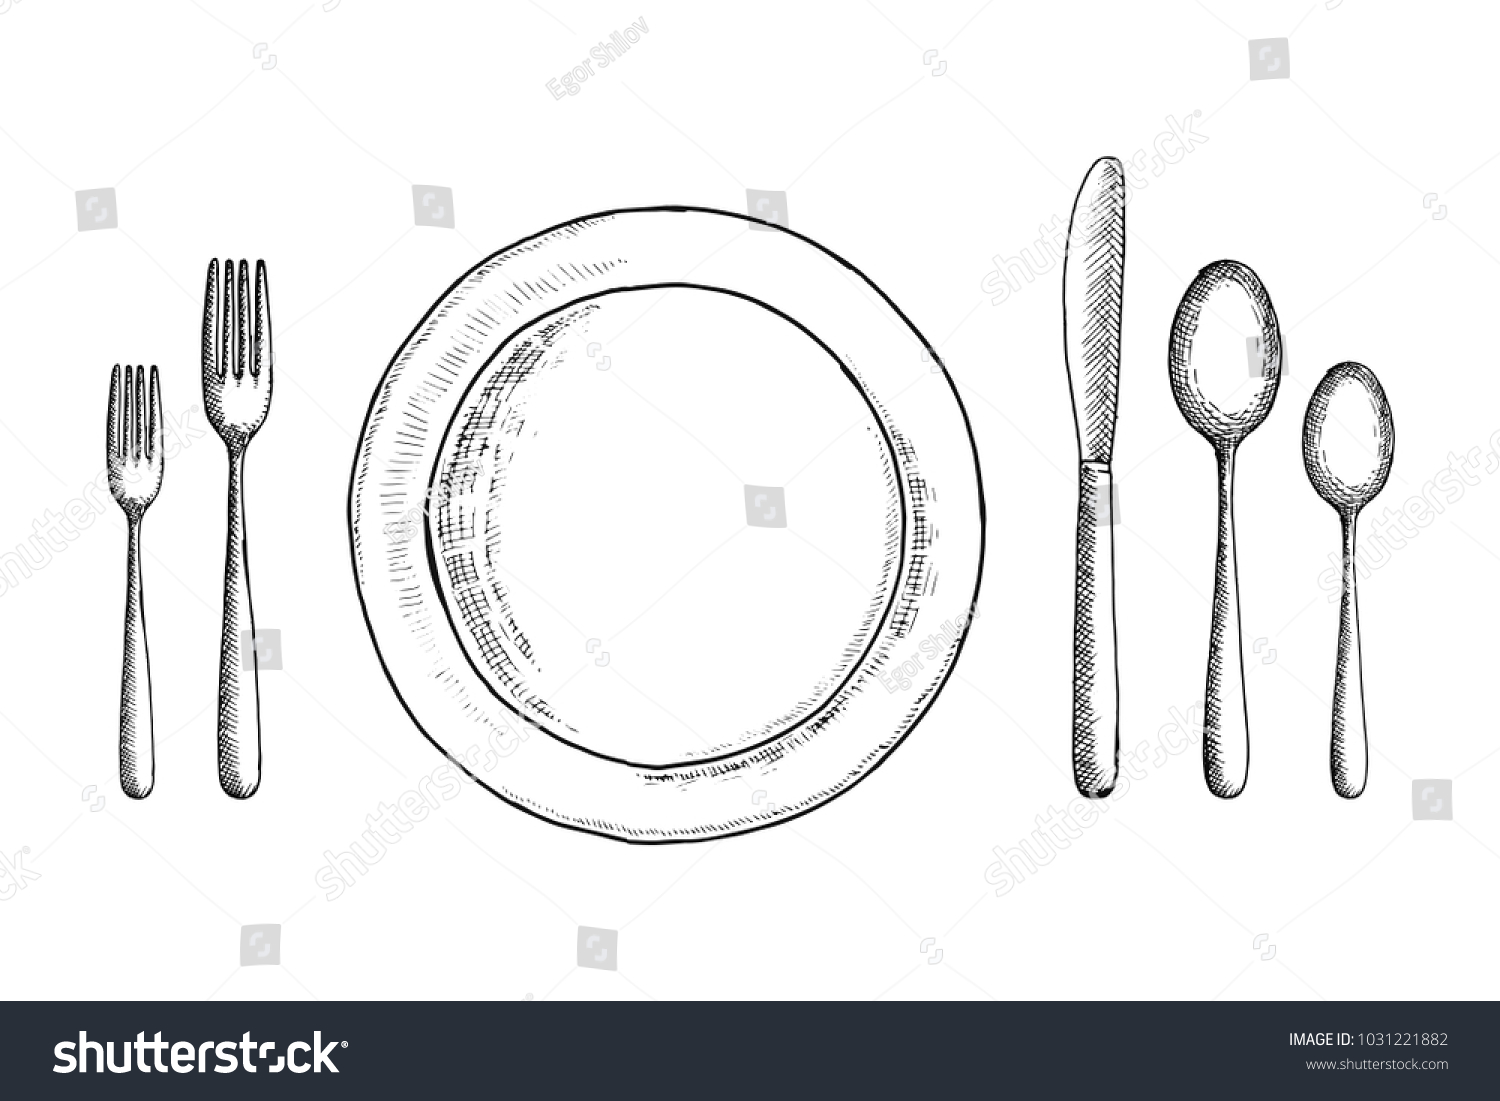 cutlery vector sketch set. spoon fork and knife near the plate. table setting  sc 1 st  Shutterstock & Cutlery Vector Sketch Set Spoon Fork Stock Vector 1031221882 ...